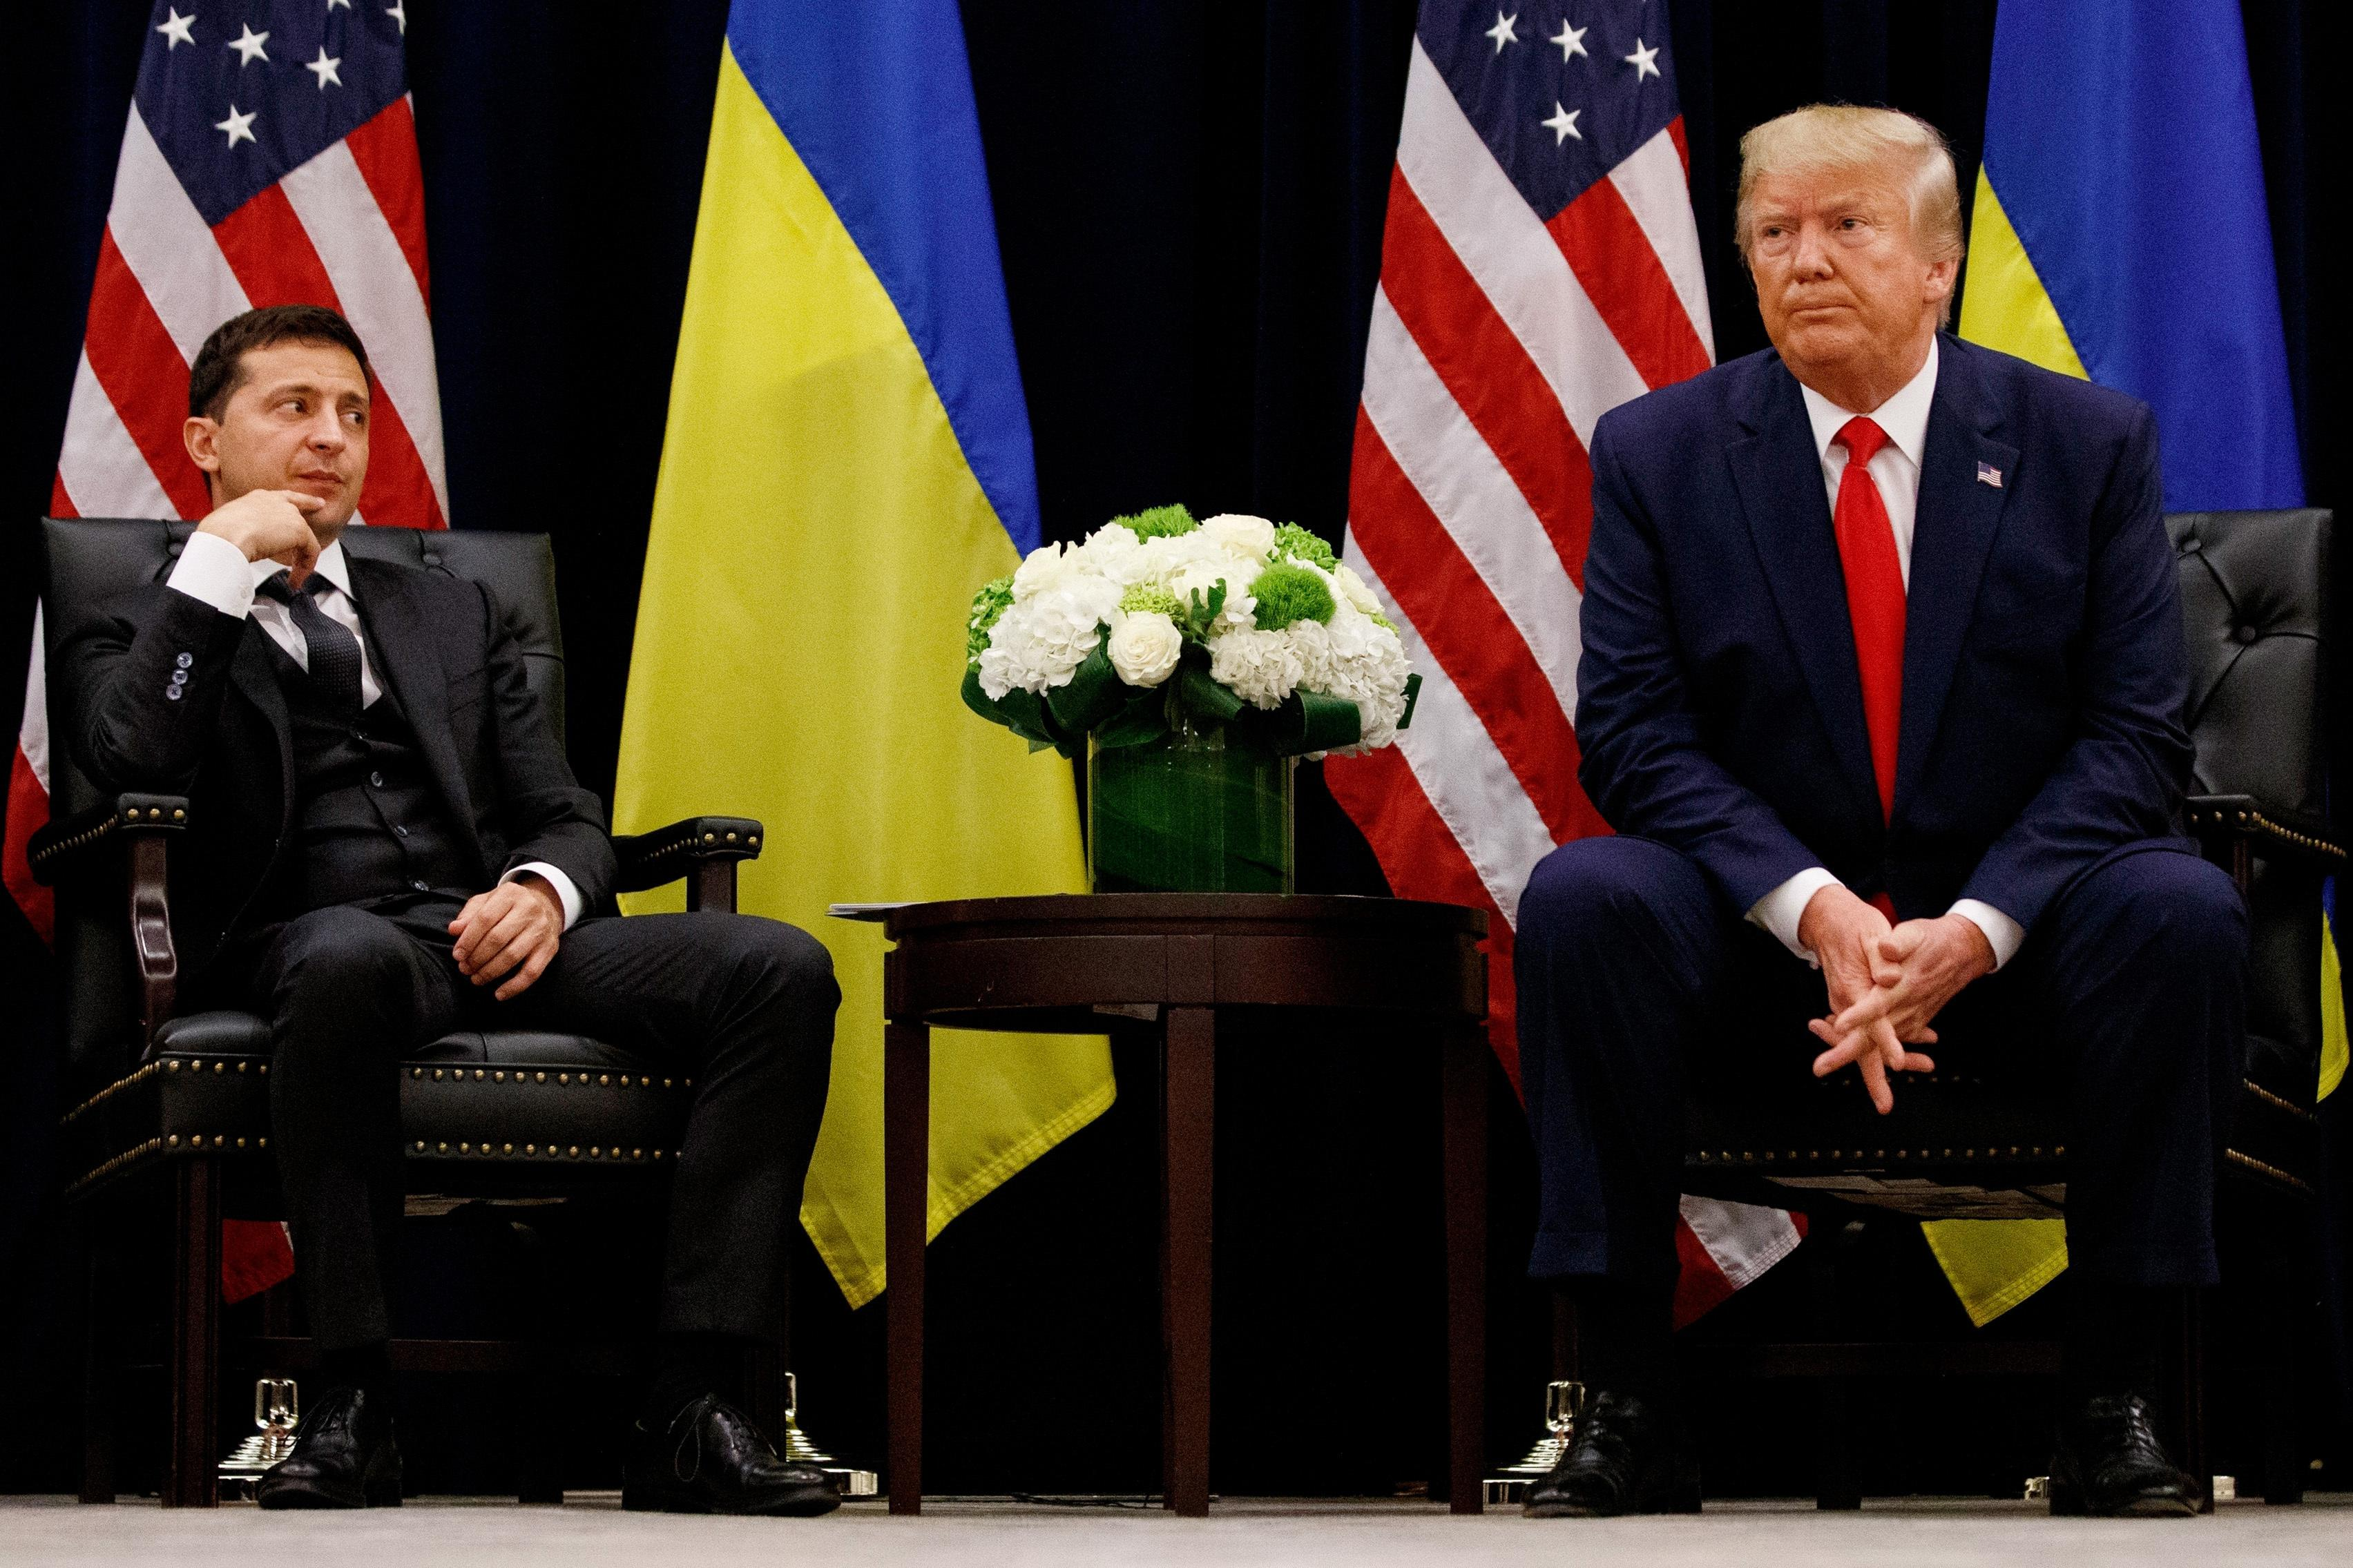 FILE - In this Sept. 25, 2019 file photo, President Donald Trump meets with Ukrainian President Volodymyr Zelenskiy in New York during the United Nations General Assembly. Trump's demand that Ukraine look into its own purported interference in the 2016 U.S. election and investigate a political rival, former Vice President Joe Biden, while the U.S. withheld the aid is at the heart of the congressional investigation that produced Trump's impeachment in the House on charges of abuse of power and obstruction of Congress. (AP Photo/Evan Vucci, File)